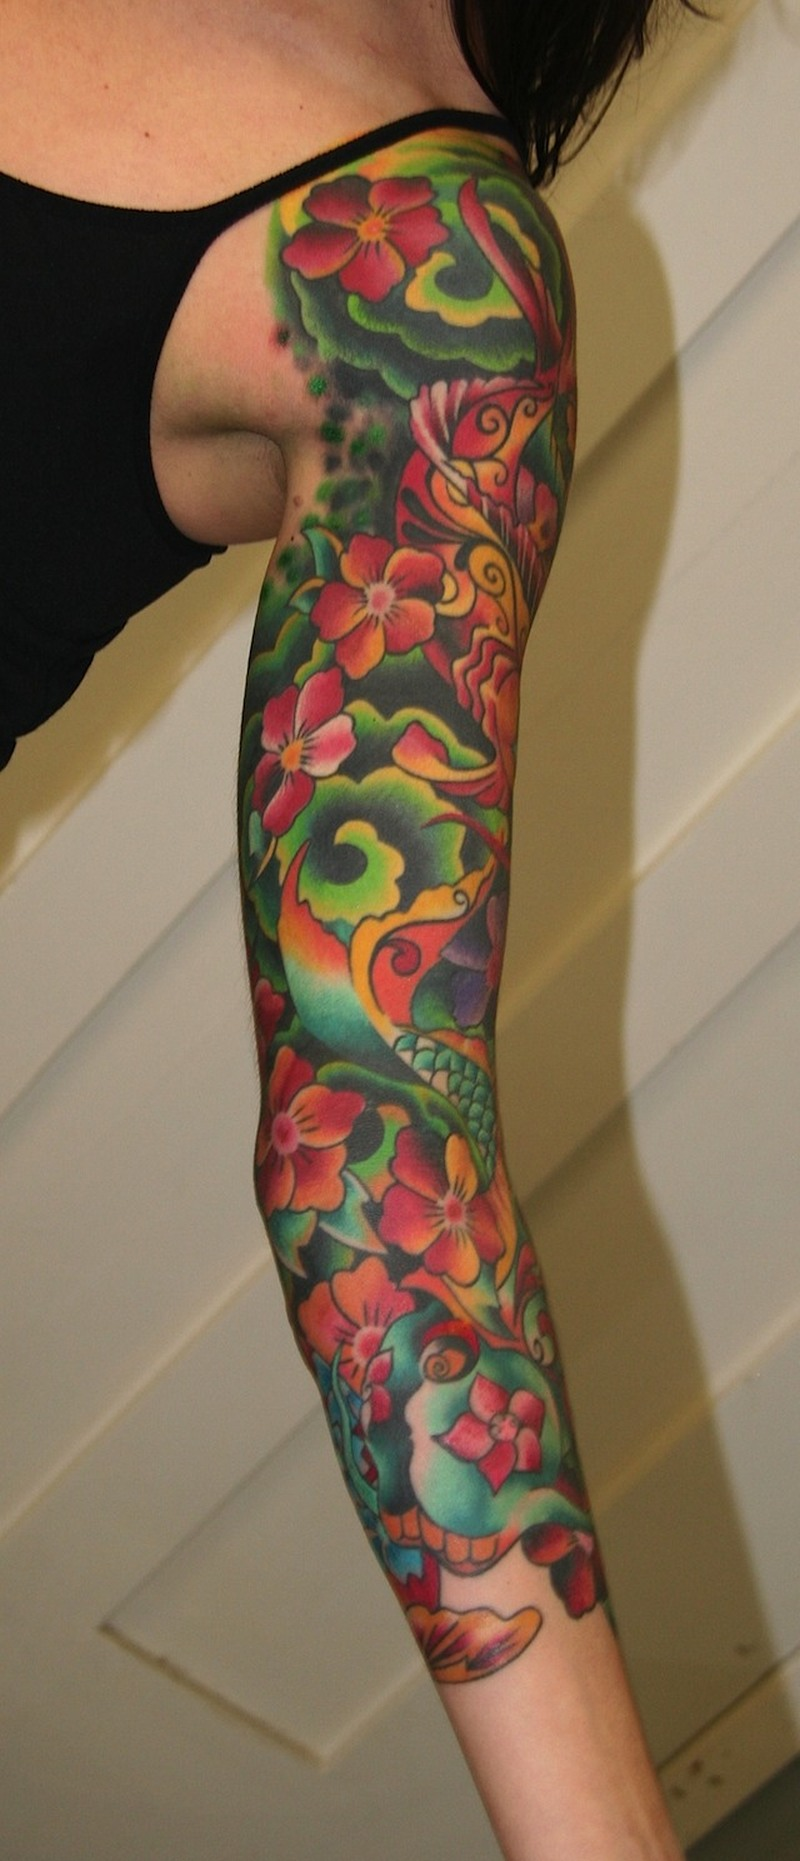 Awesome Sleeve Tattoos For Women